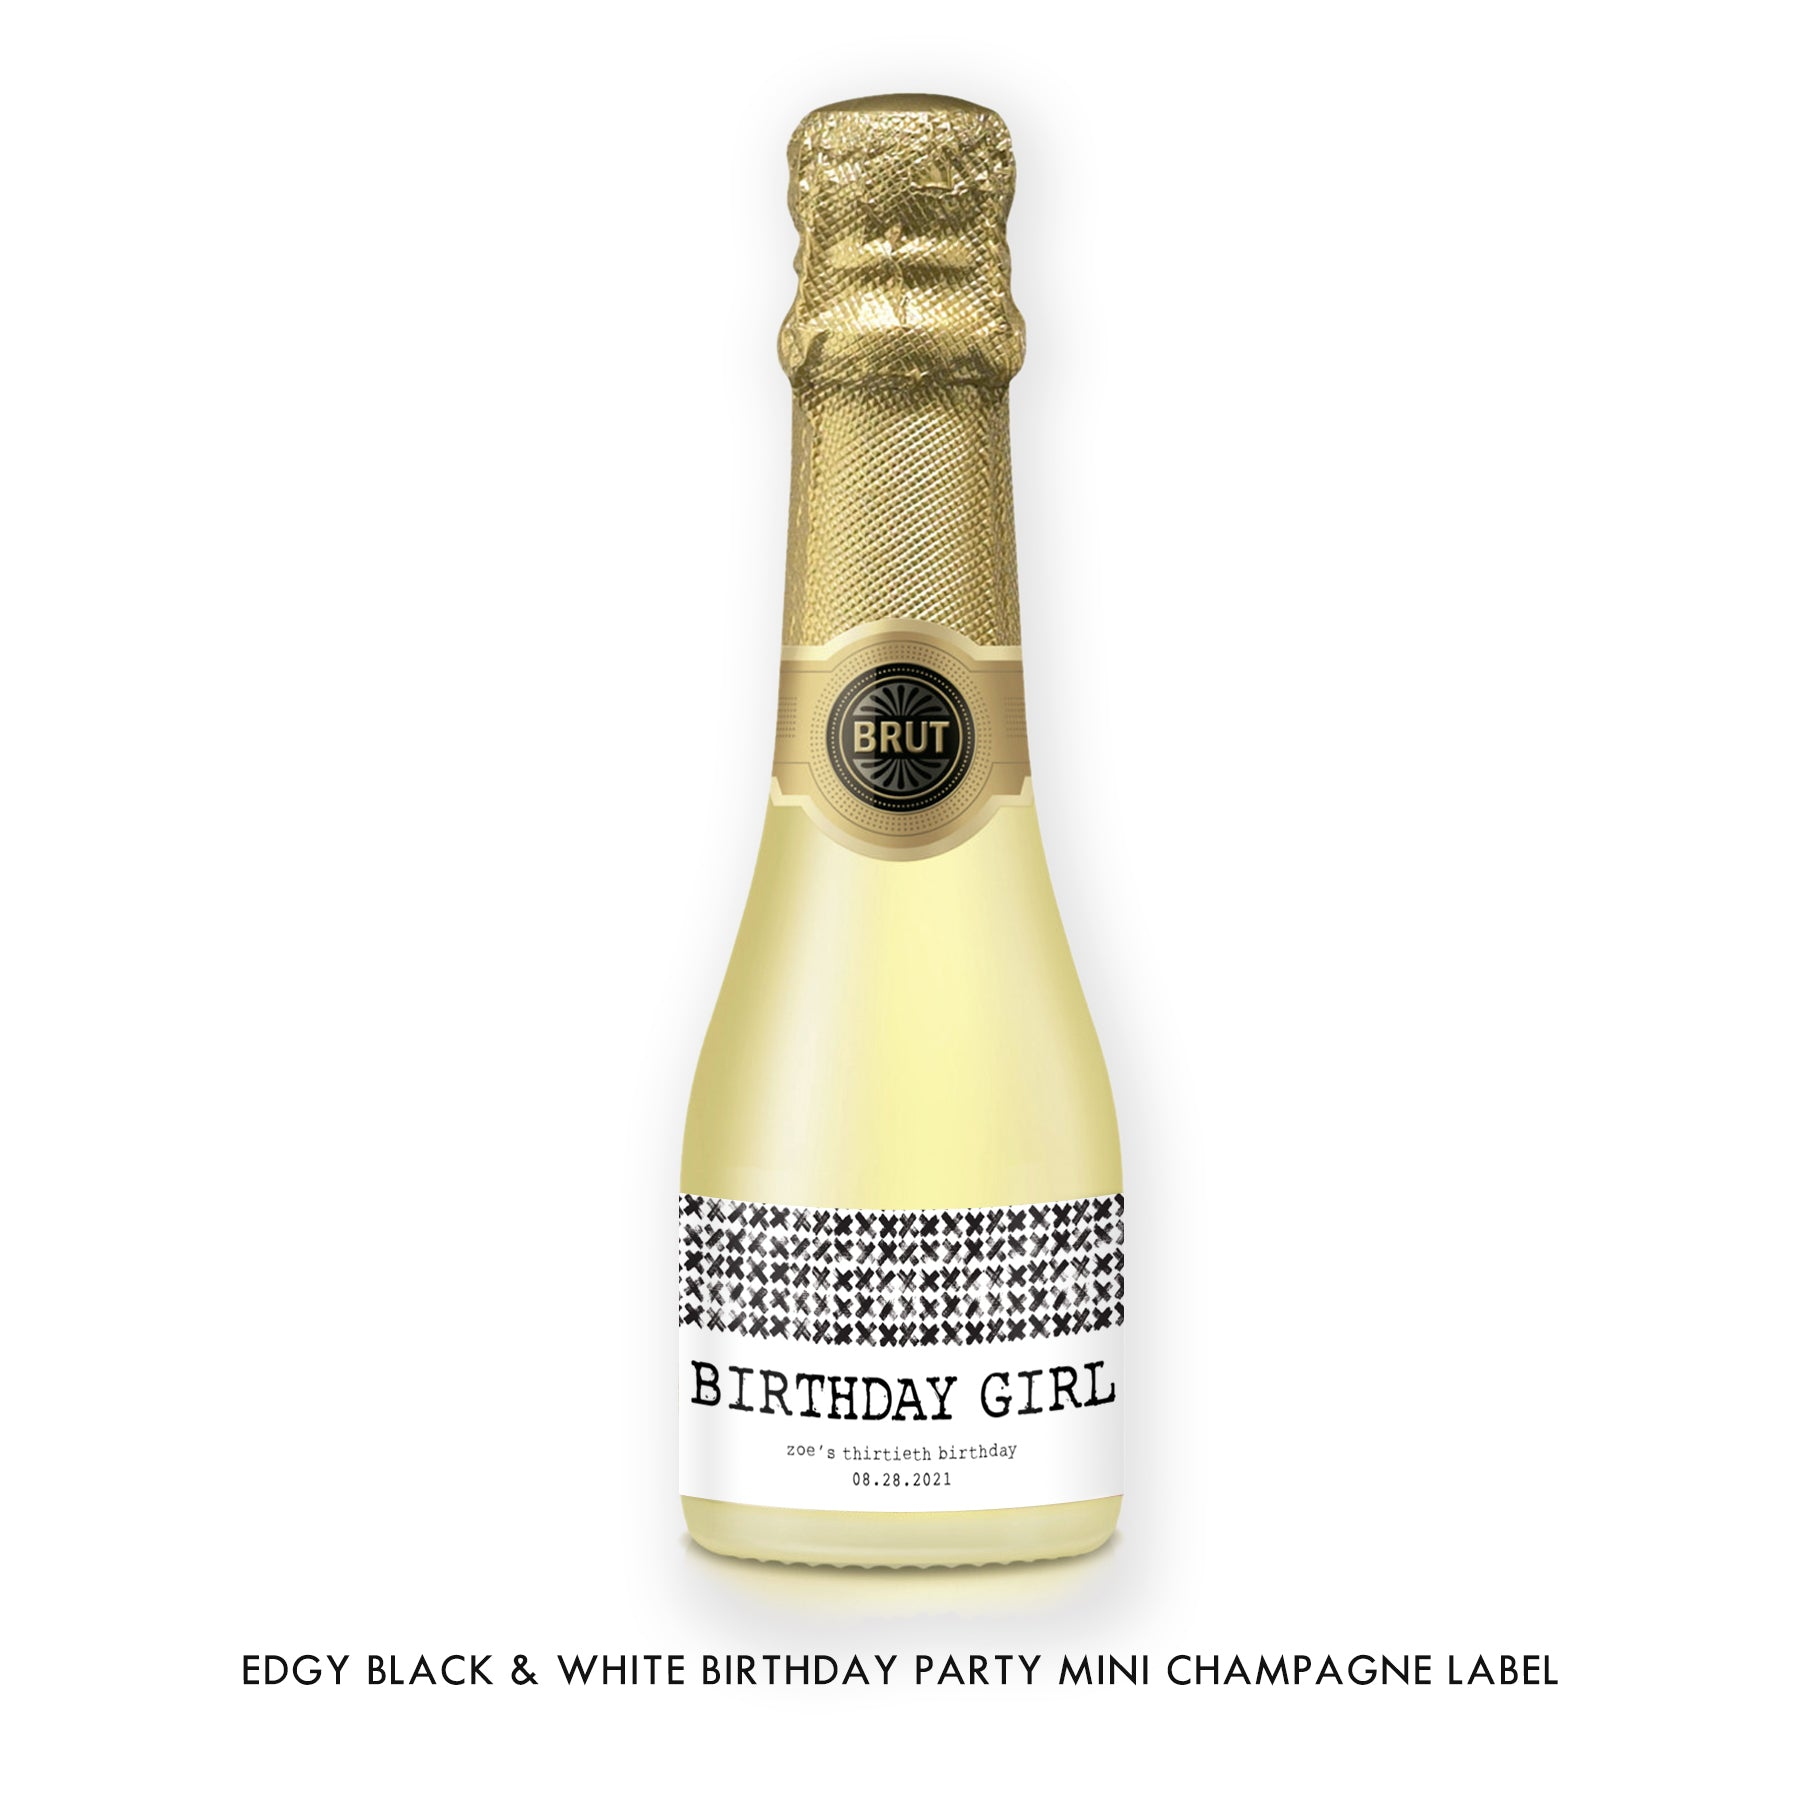 Edgy Black & White Birthday Party Champagne Labels Coll. 7